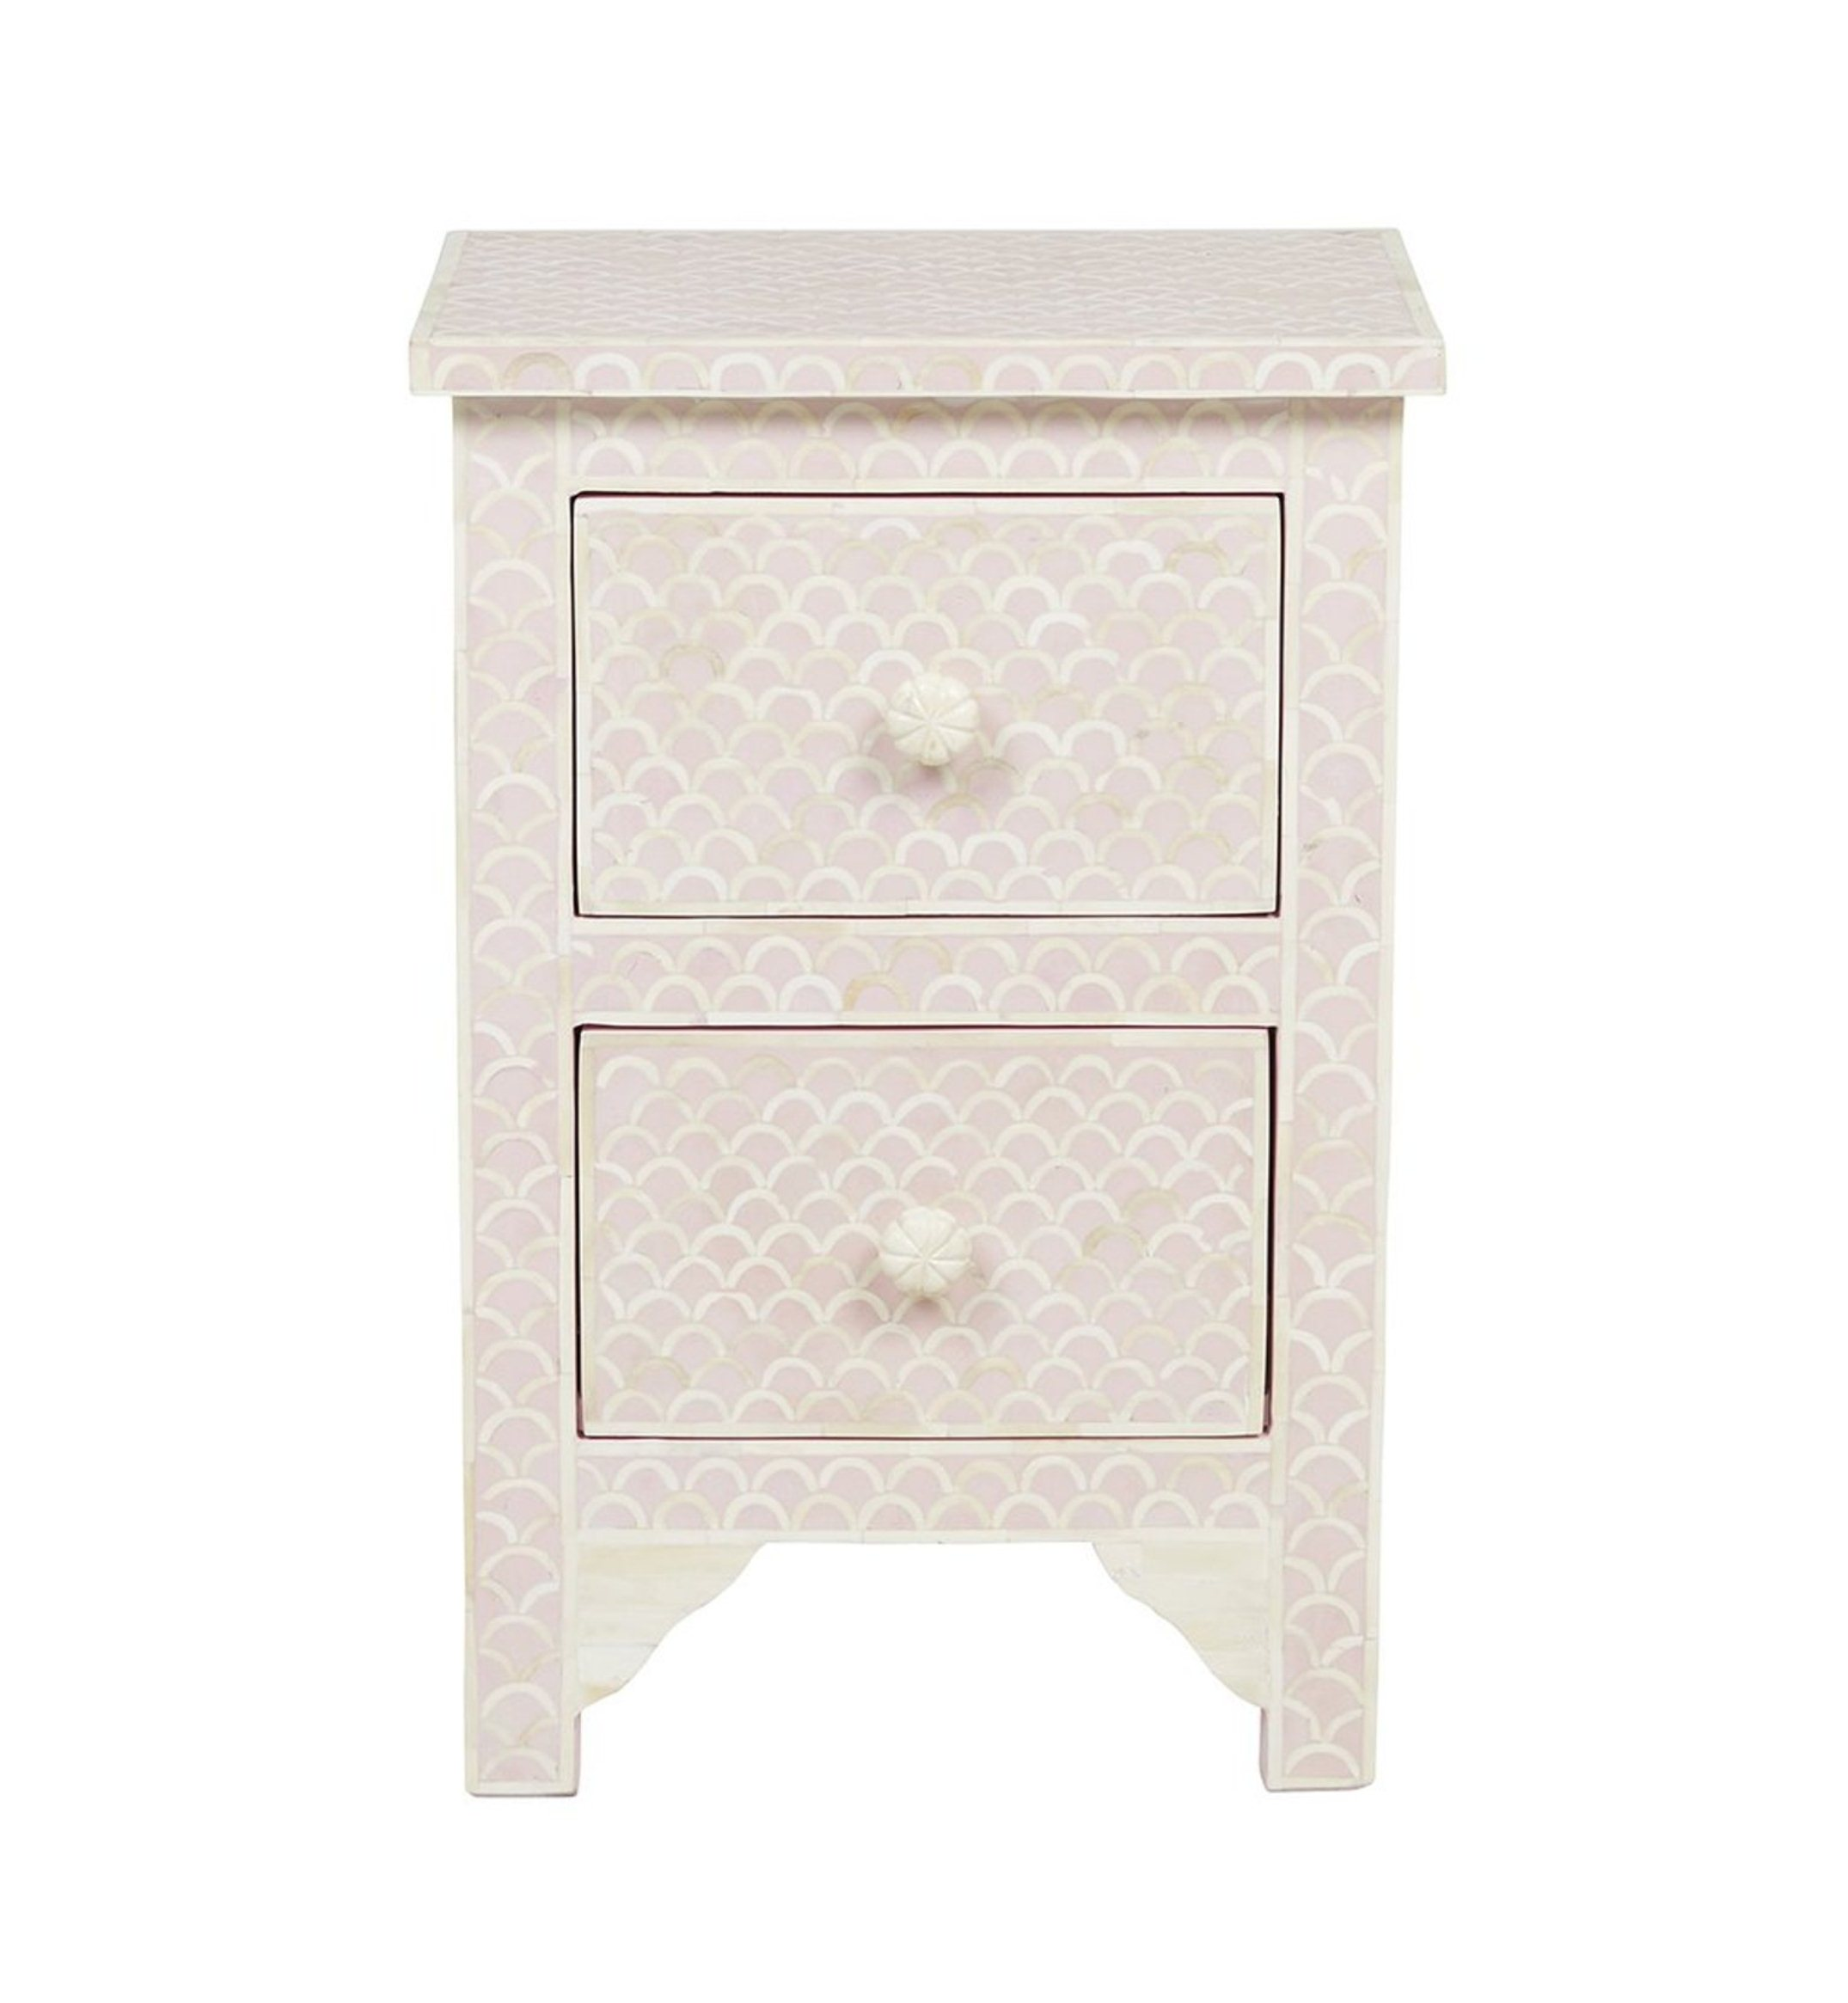 Bone Inlay Bedside Table Fish Scale Design In Blush Pink Color